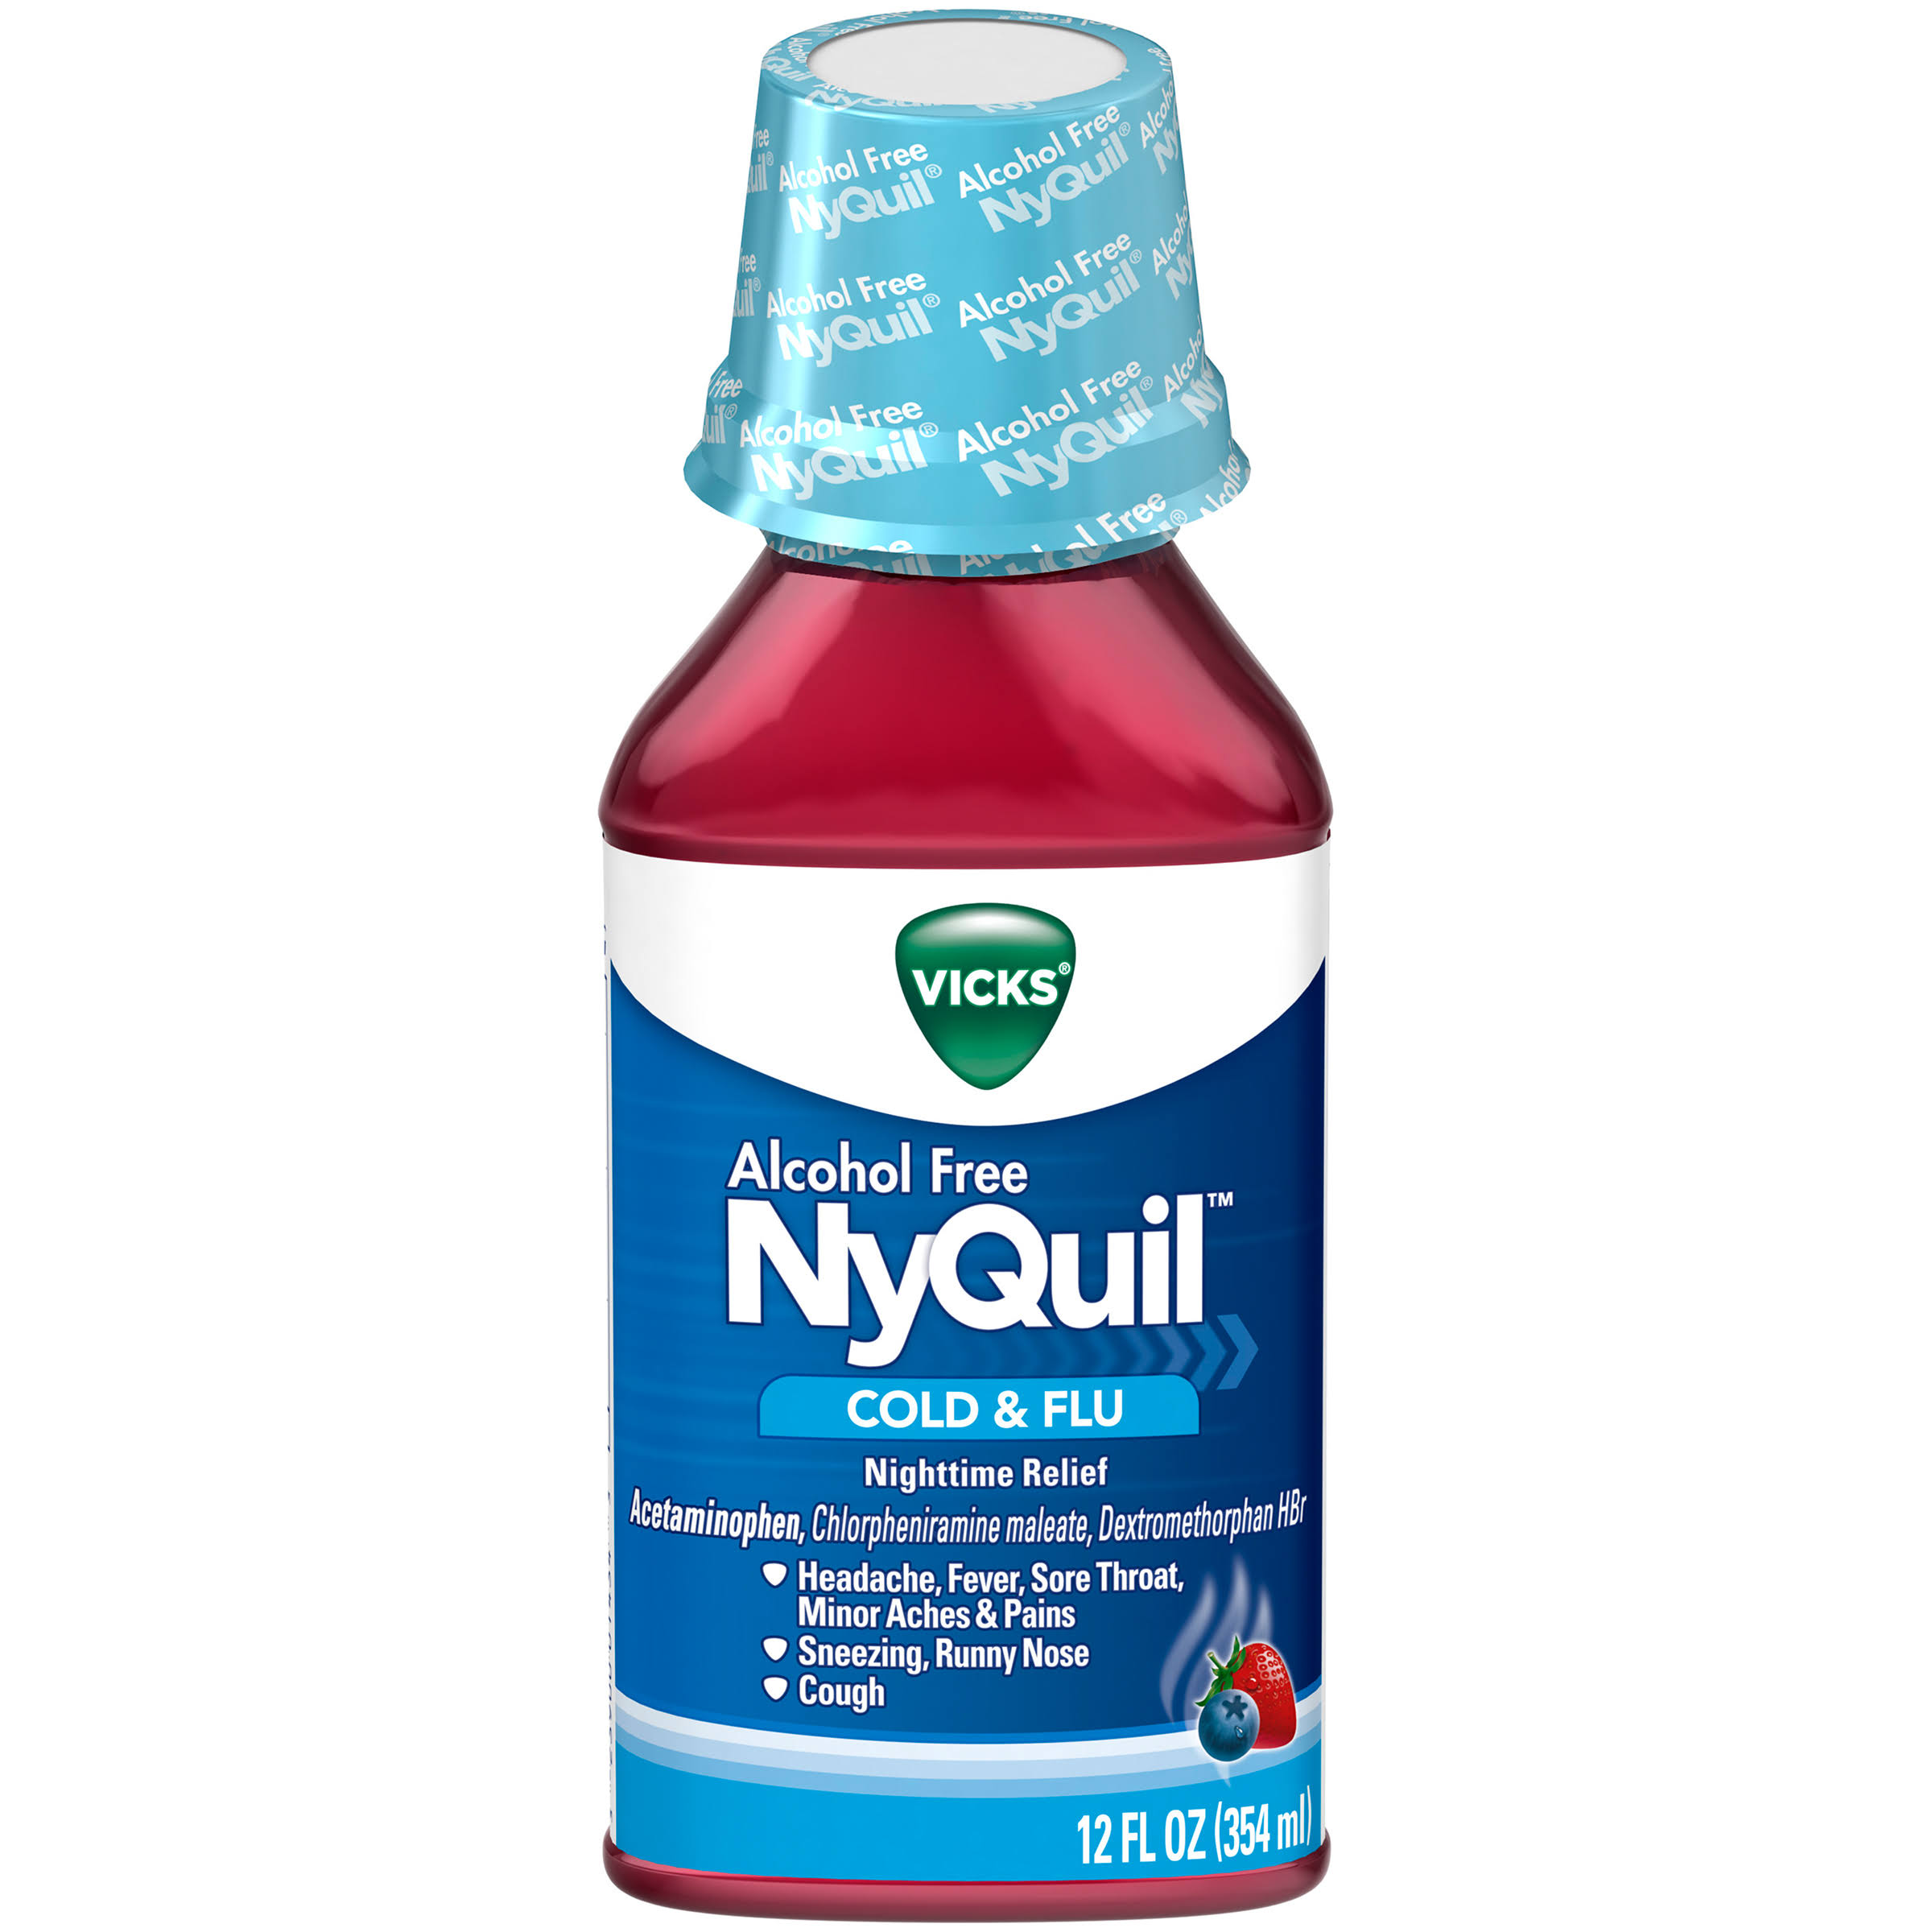 Vicks NyQuil Cold & Flu, Nighttime Relief - 12 fl oz